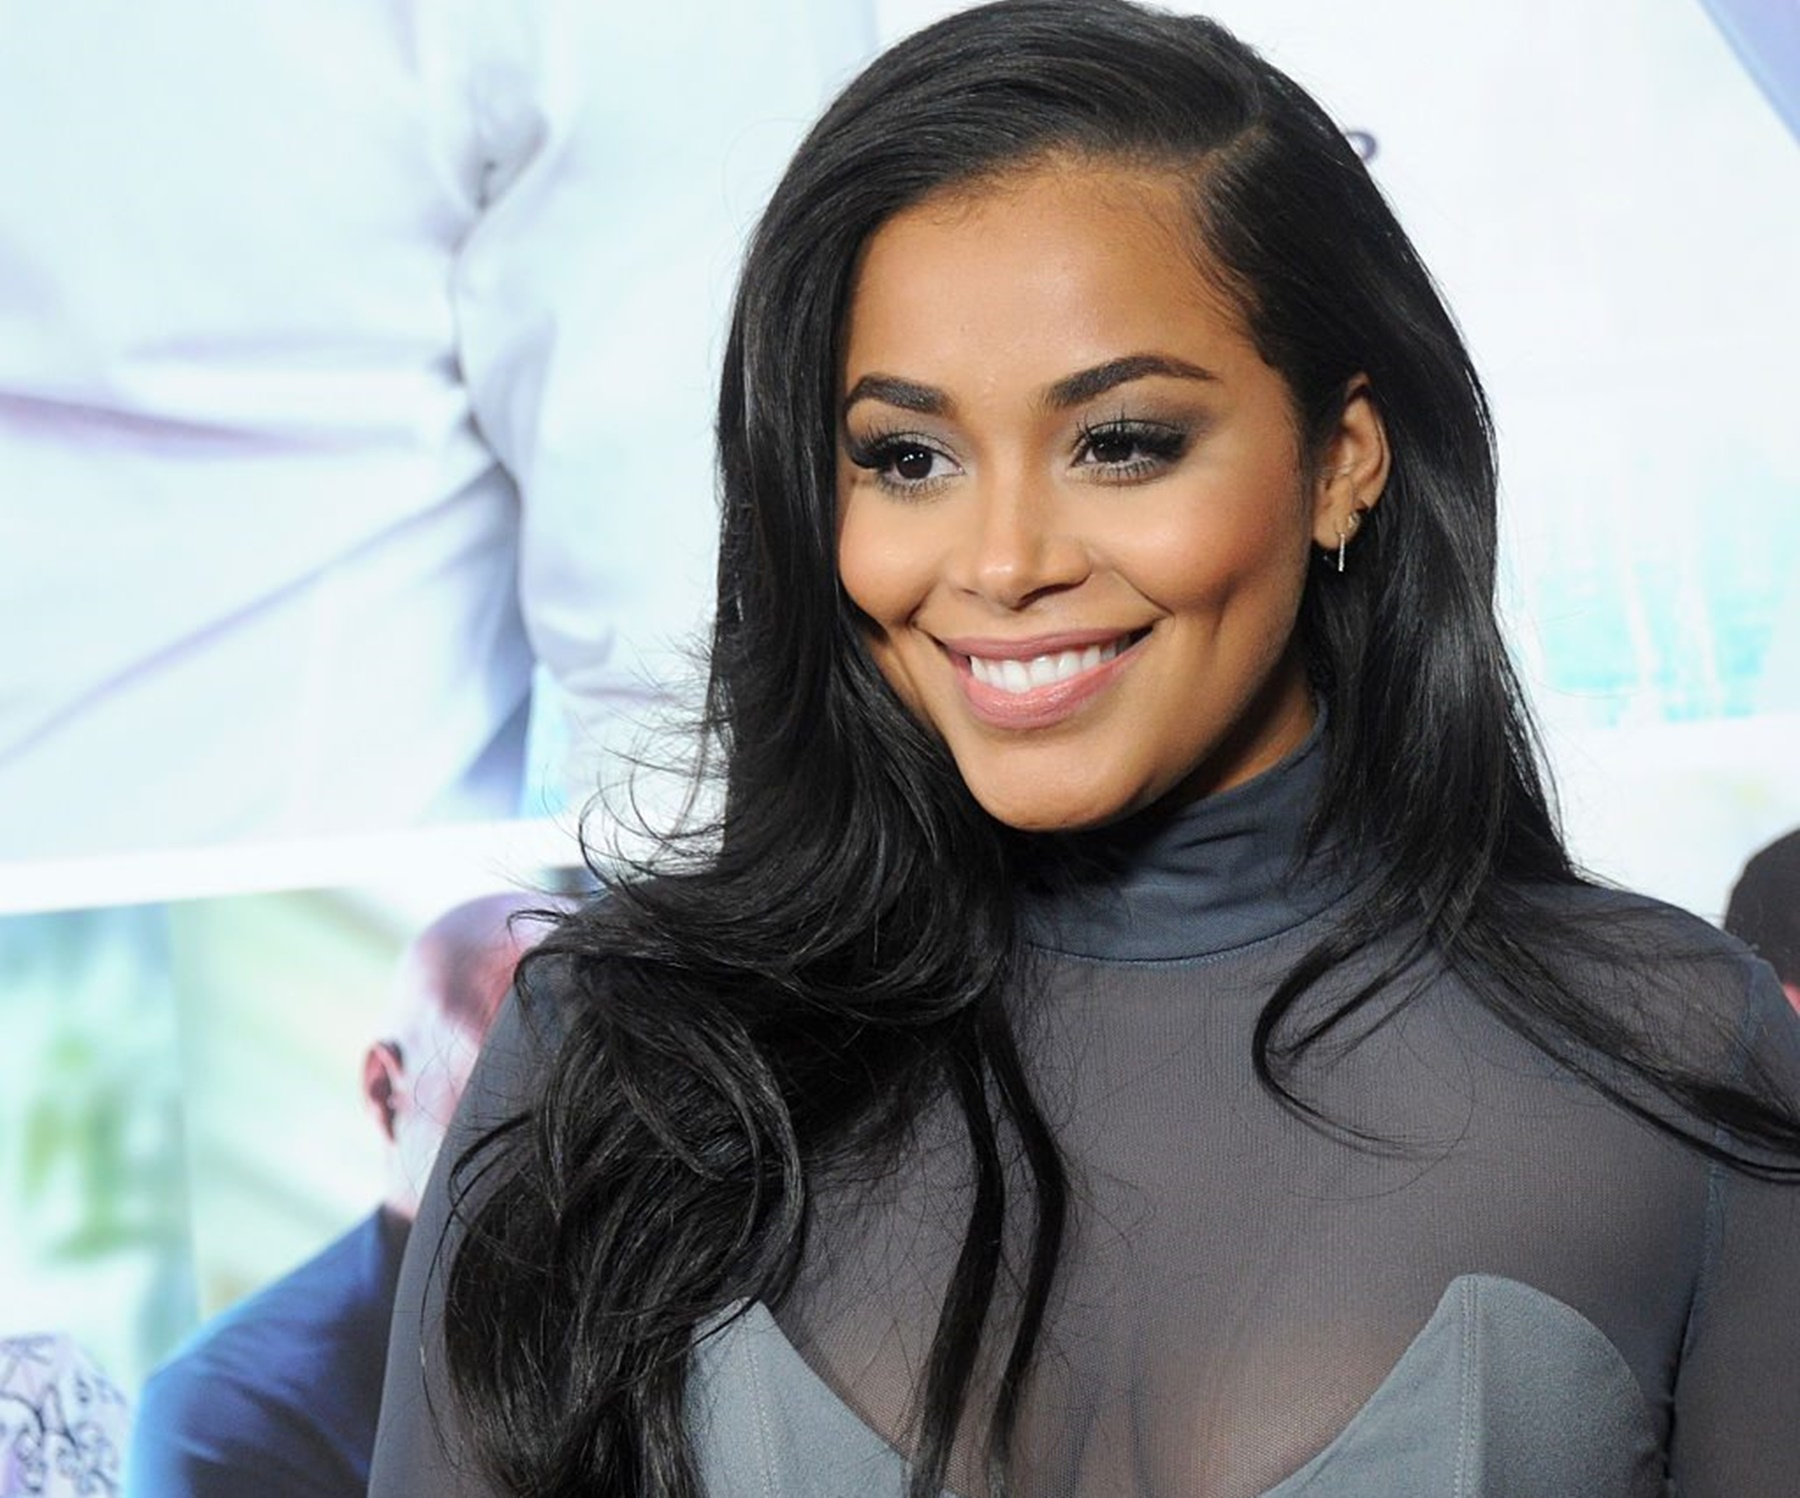 lauren-london-receives-beautiful-poem-about-her-fairy-tale-love-affair-with-nipsey-hussle-from-the-game-angry-critics-say-the-rapper-is-doing-too-much